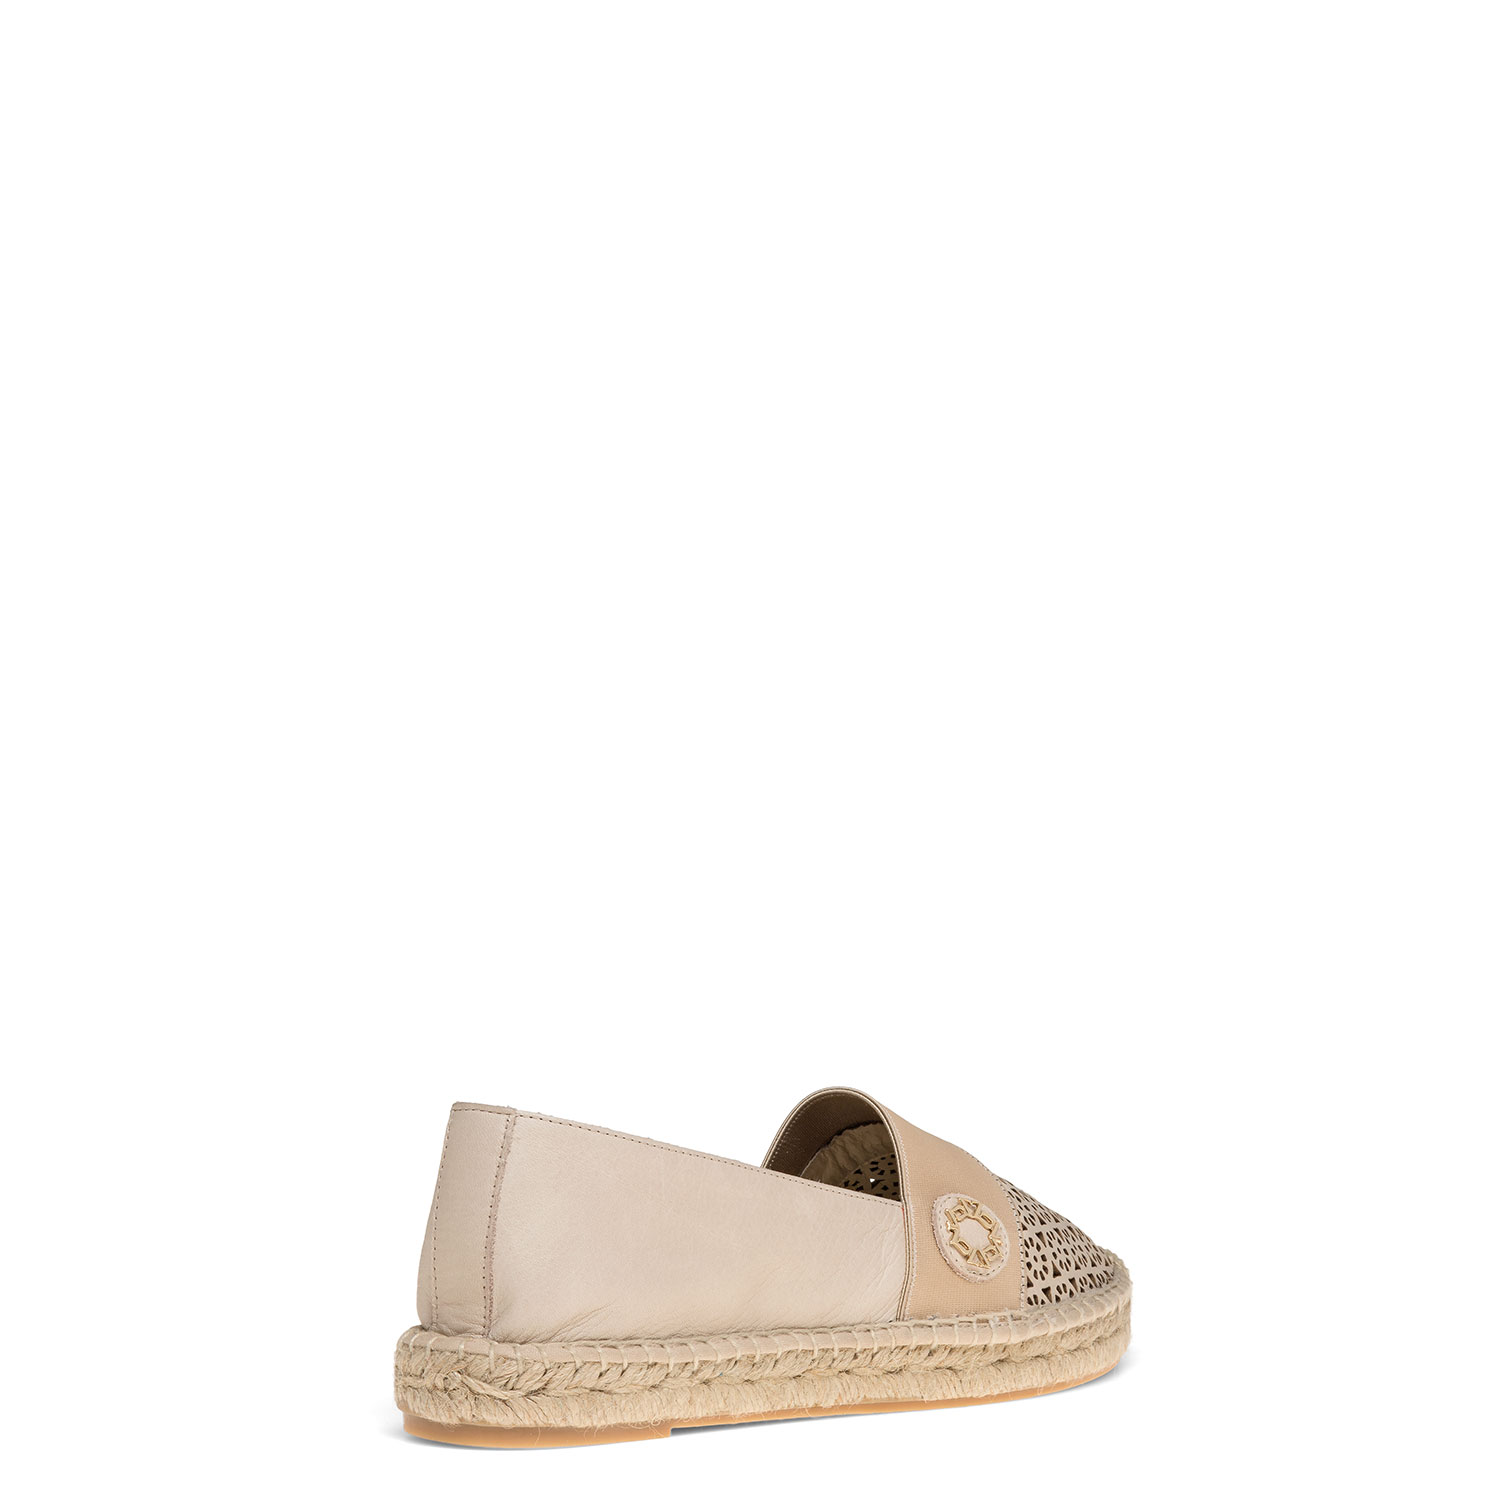 Women's shoes CARLO PAZOLINI CT-HOL1-3PR